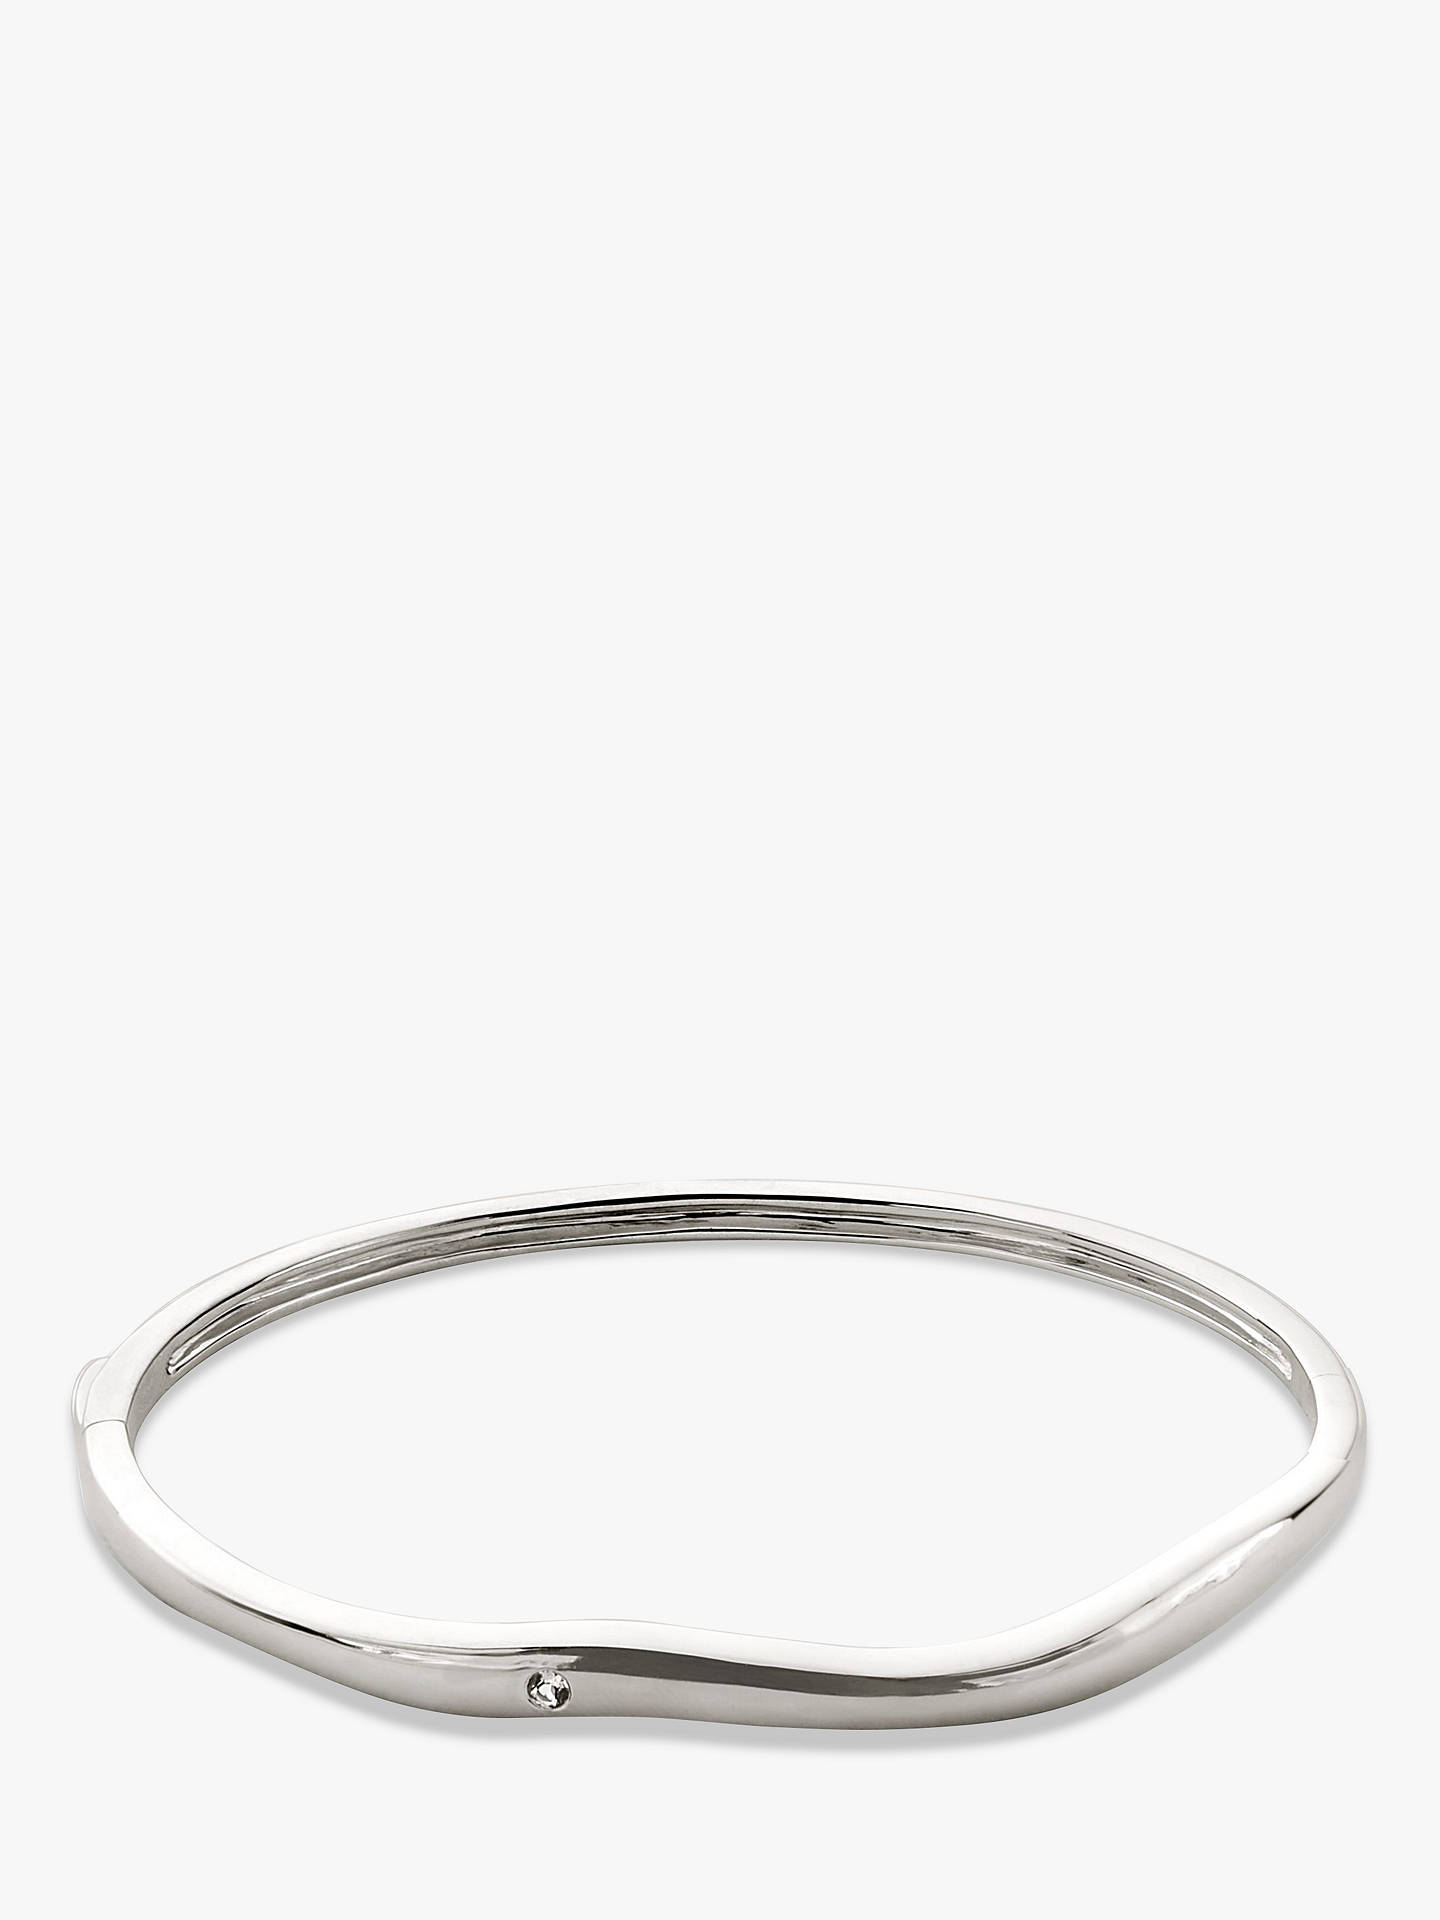 BuyModern Rarity White Topaz Wave Bangle, Silver Online at johnlewis.com